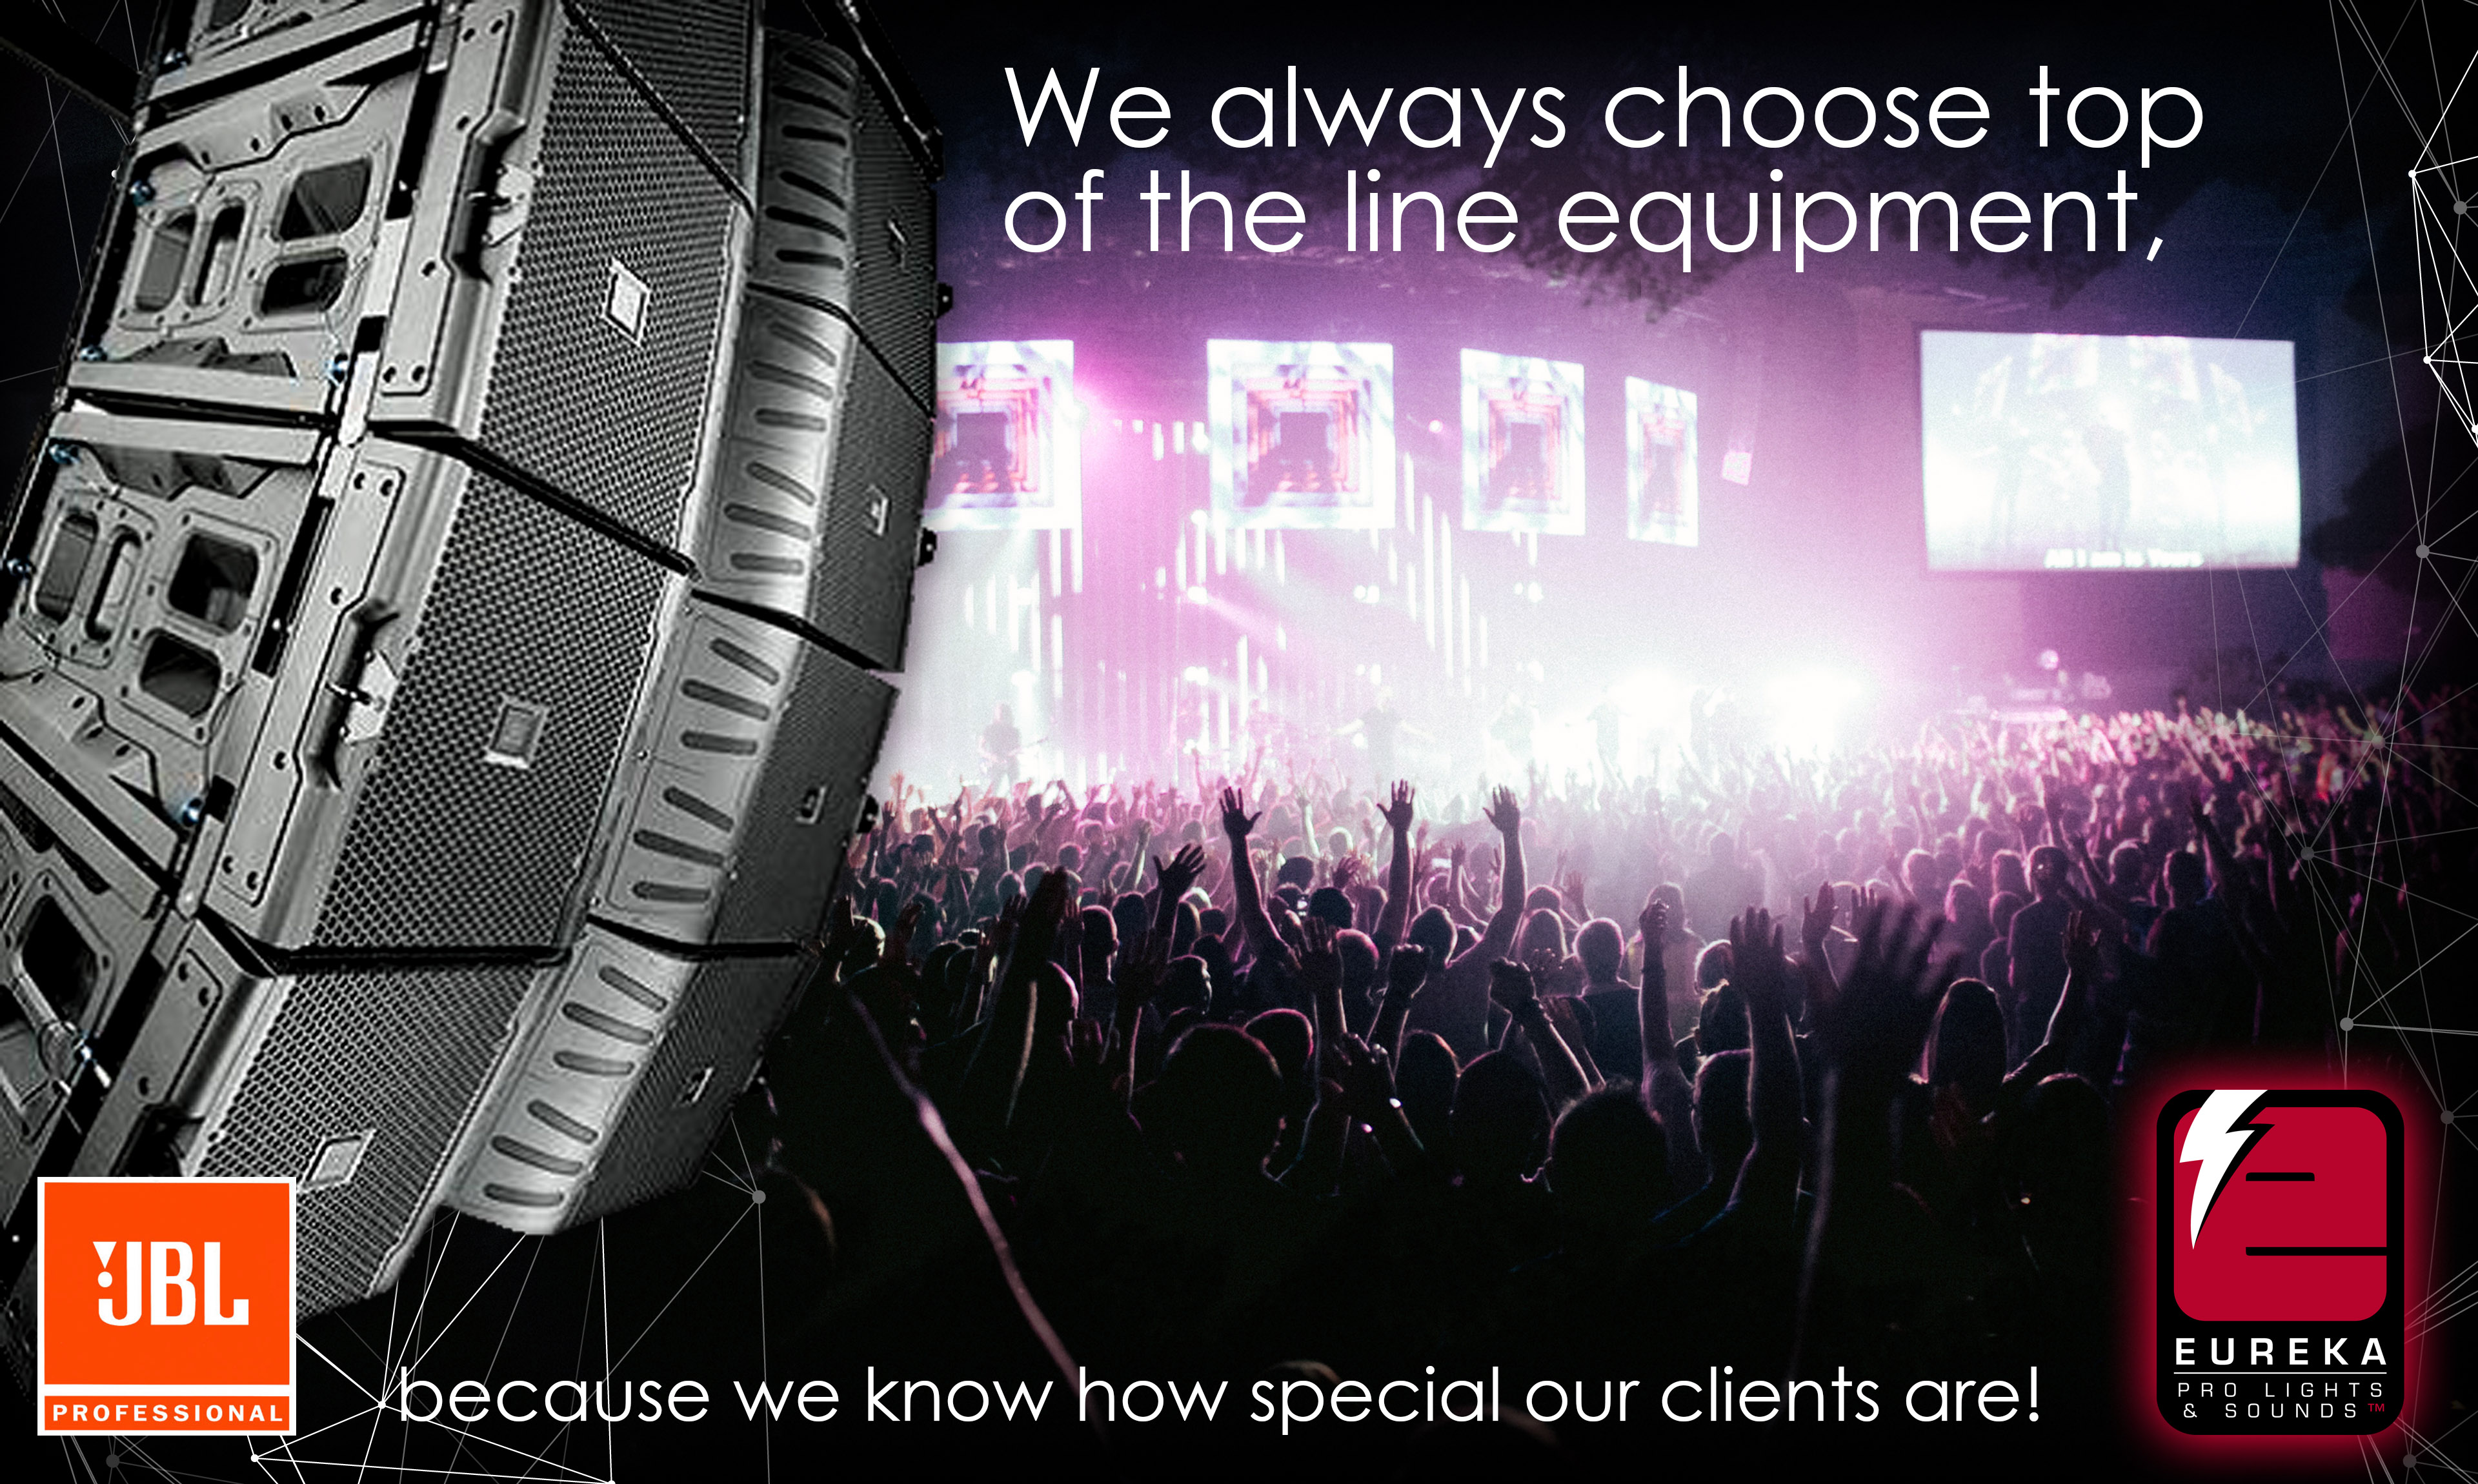 Eureka Pro Lights and Sounds